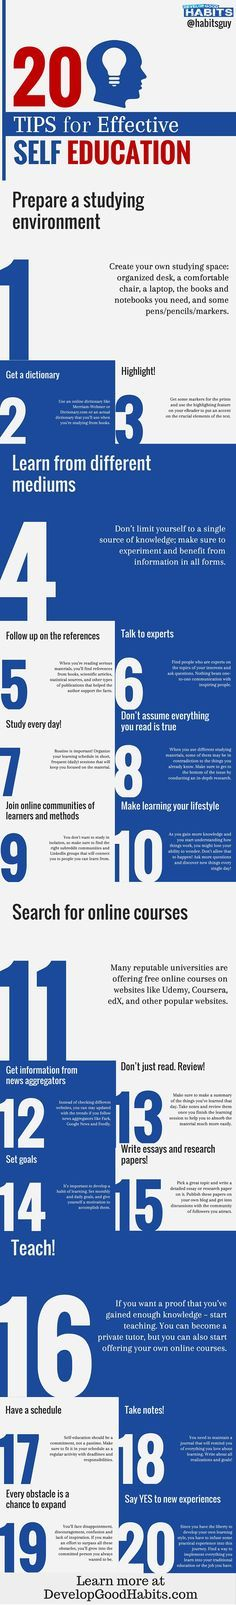 Tips for continuing your self education. Regardless of age! These days self education and growth is a lifelong habit. See some simple tips for getting the most out of time and ongoing education. |  |Learning |Self education | adult learning | continuing e